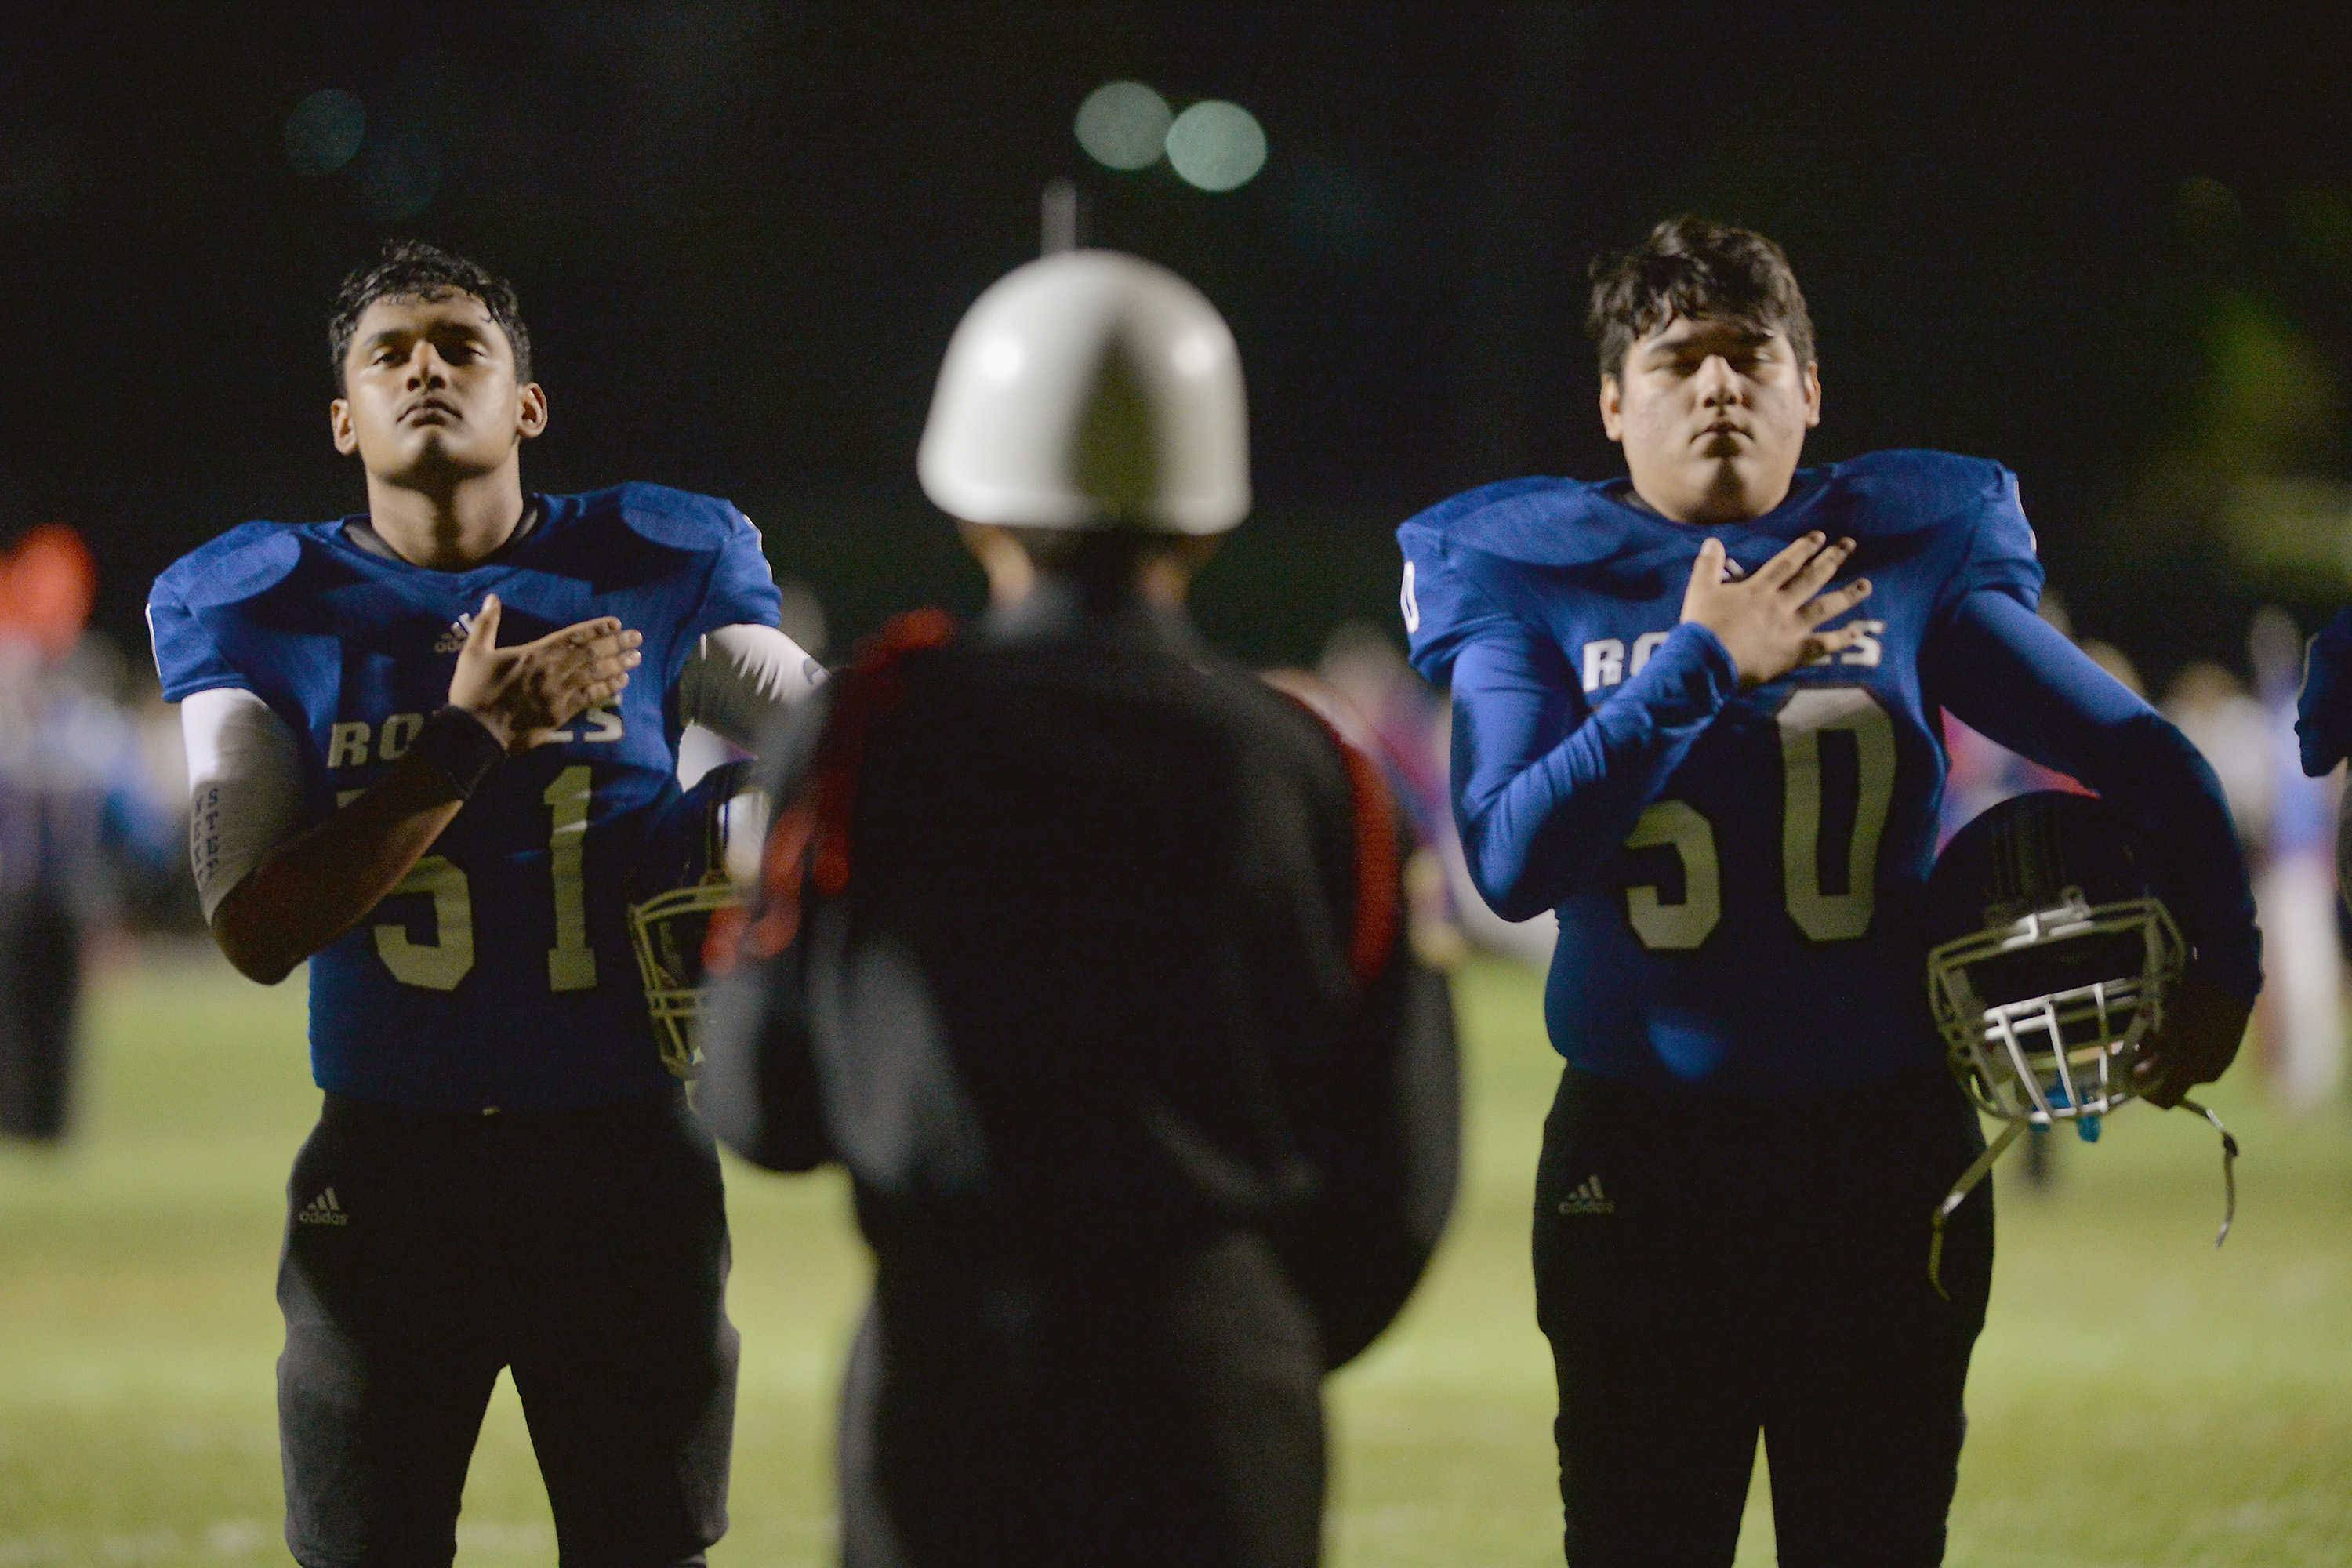 Larkin linebackers Manny Cruz, left, and Jose Bosque stand at attention for the national anthem before kickoff of their Upstate Eight game with St. Charles East Friday night at Memorial Field in Elgin. The school also honored 2003 graduate, Staff Sgt. Adam Thomas who died Monday in Afghanistan.